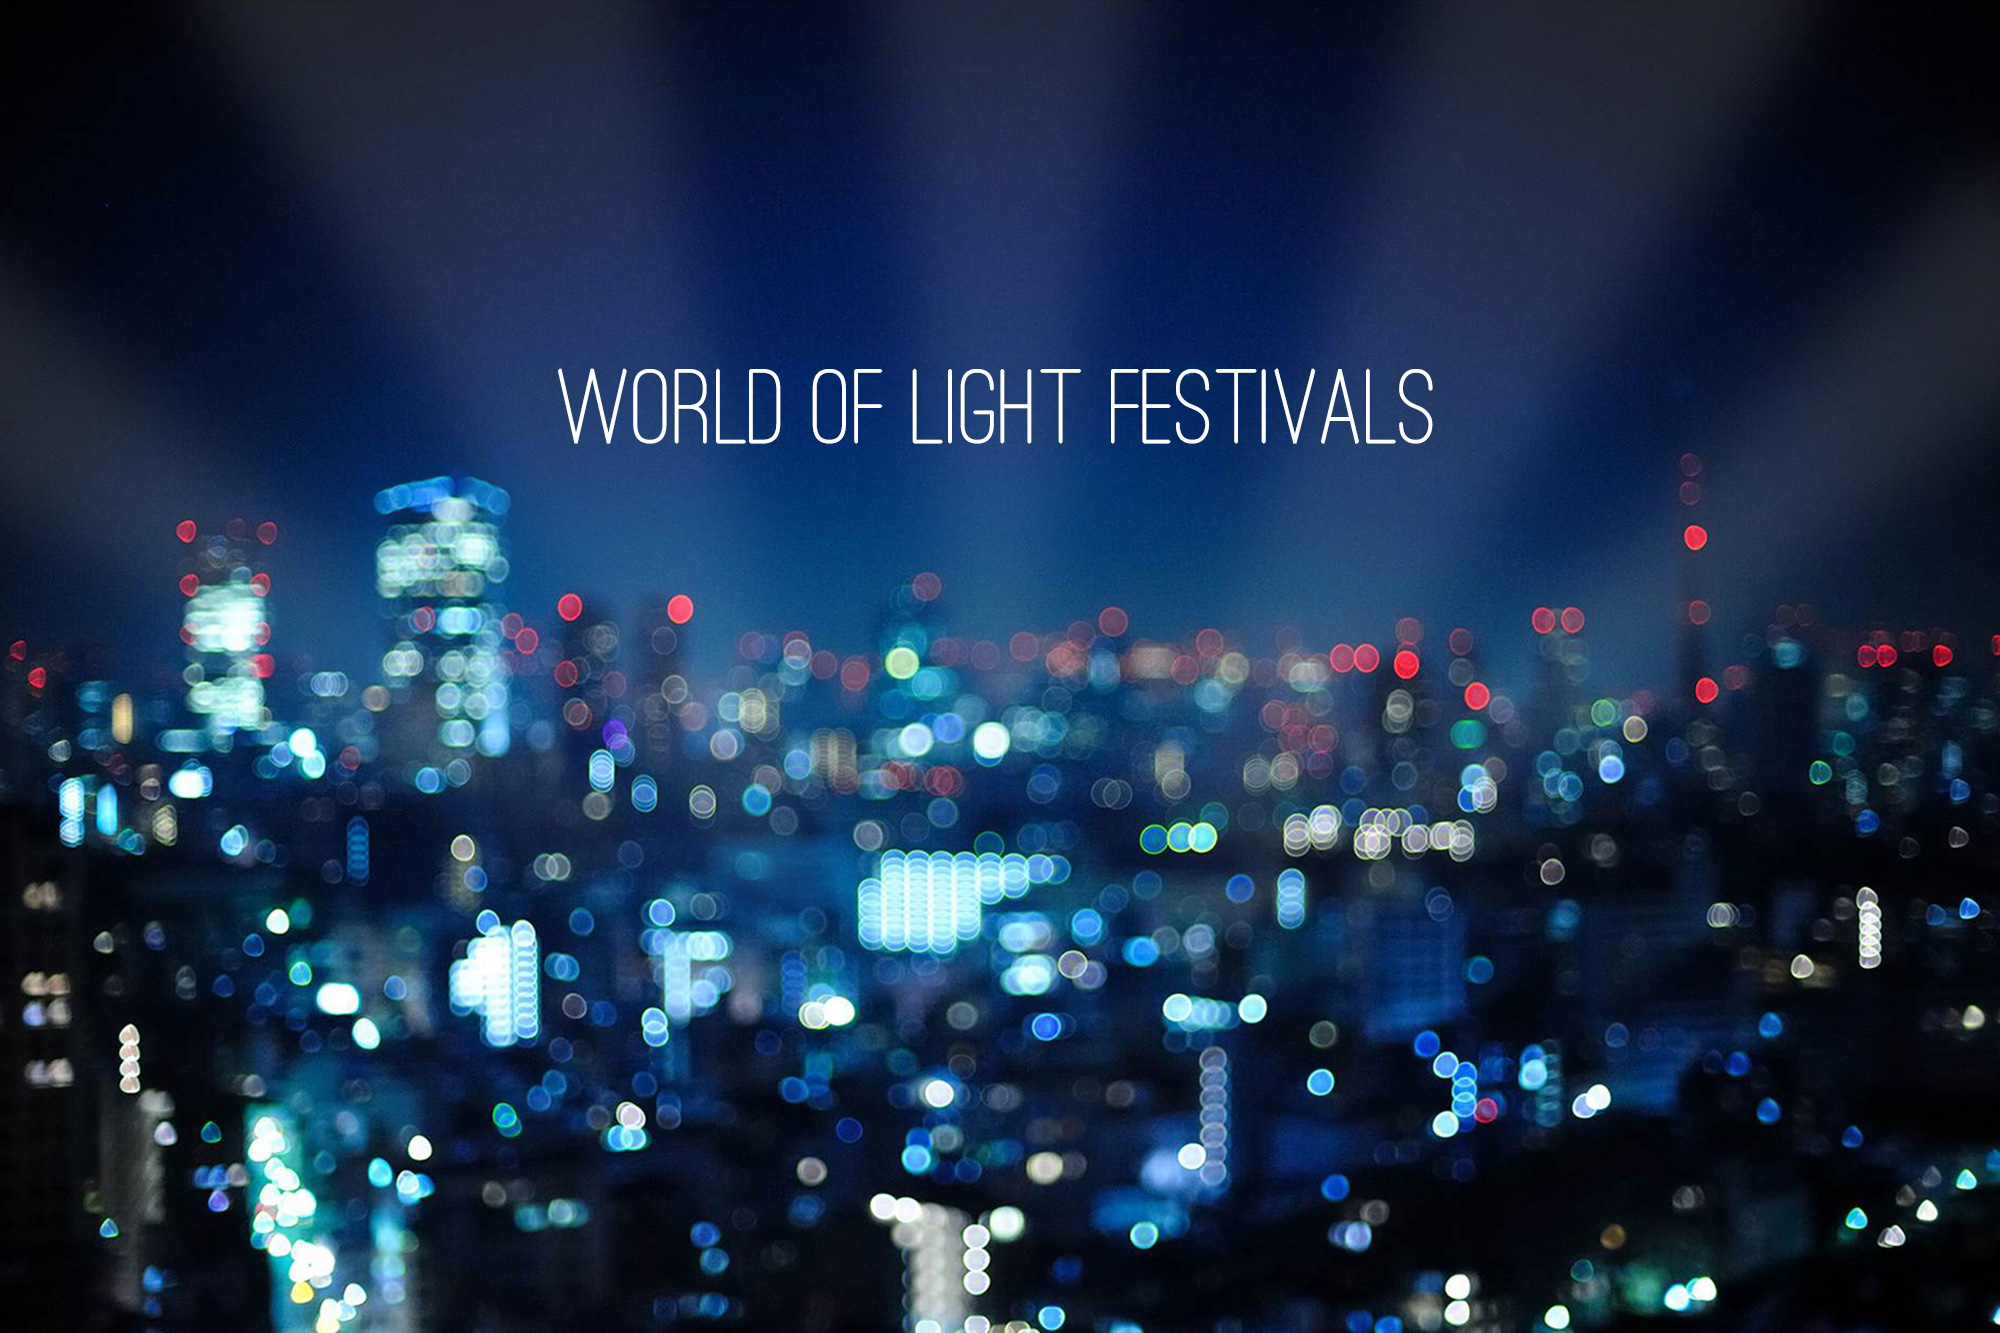 World of Light Festivals